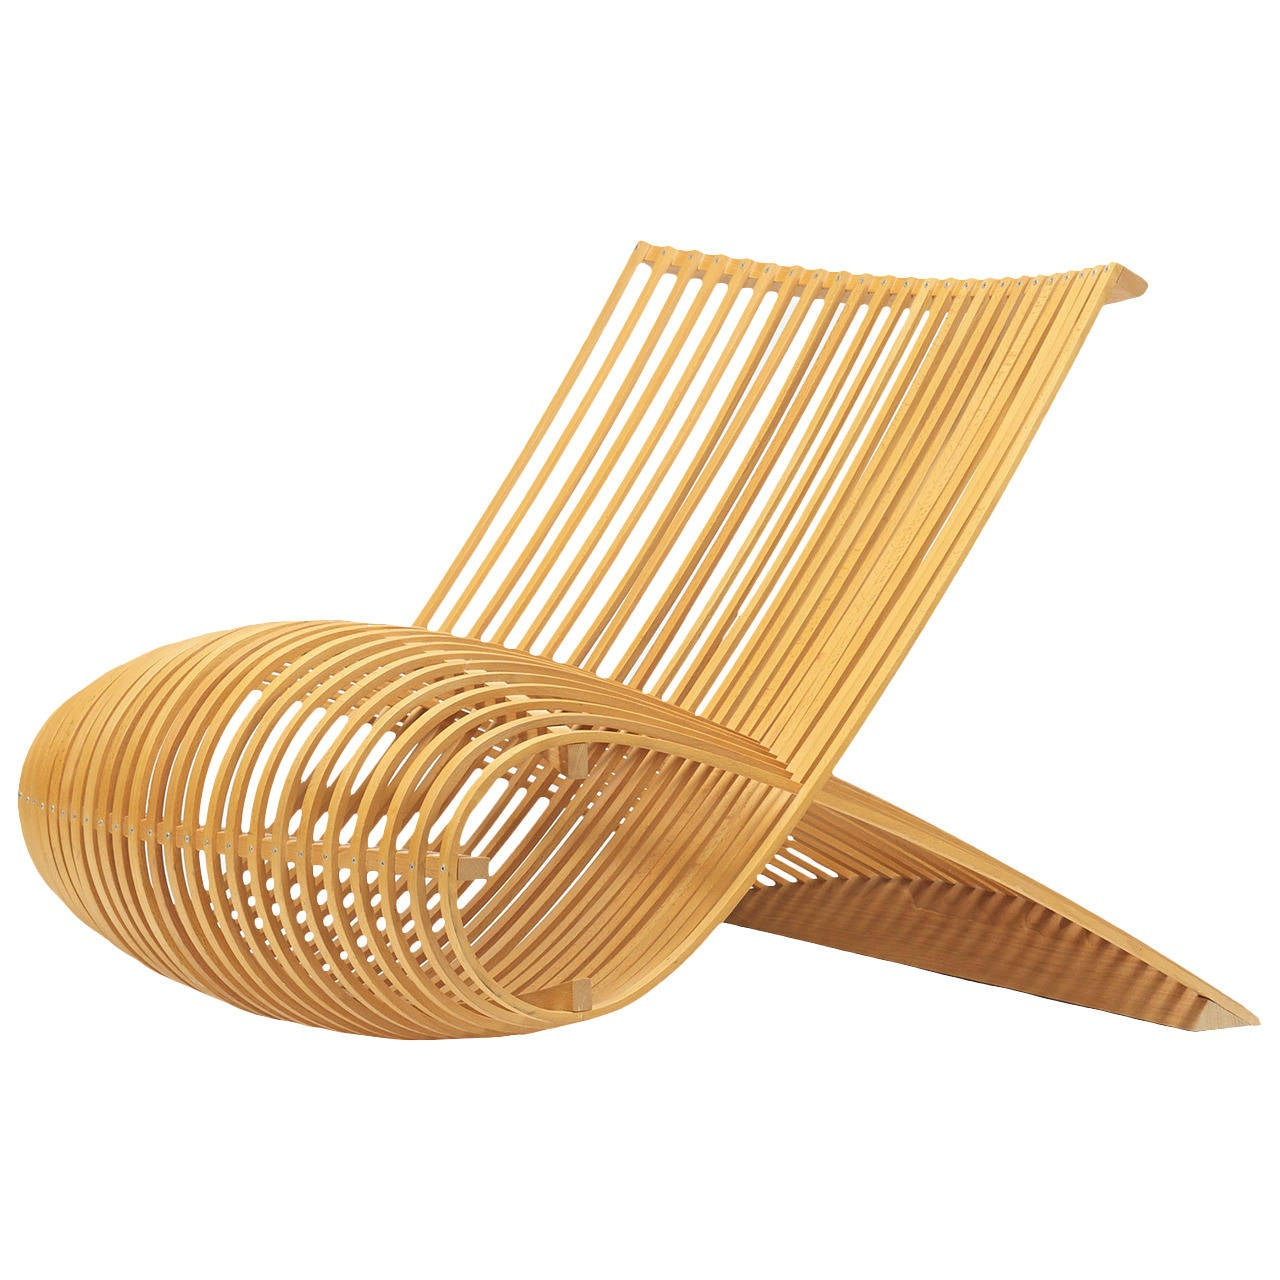 wooden chair by marc newson for cappellini at 1stdibs